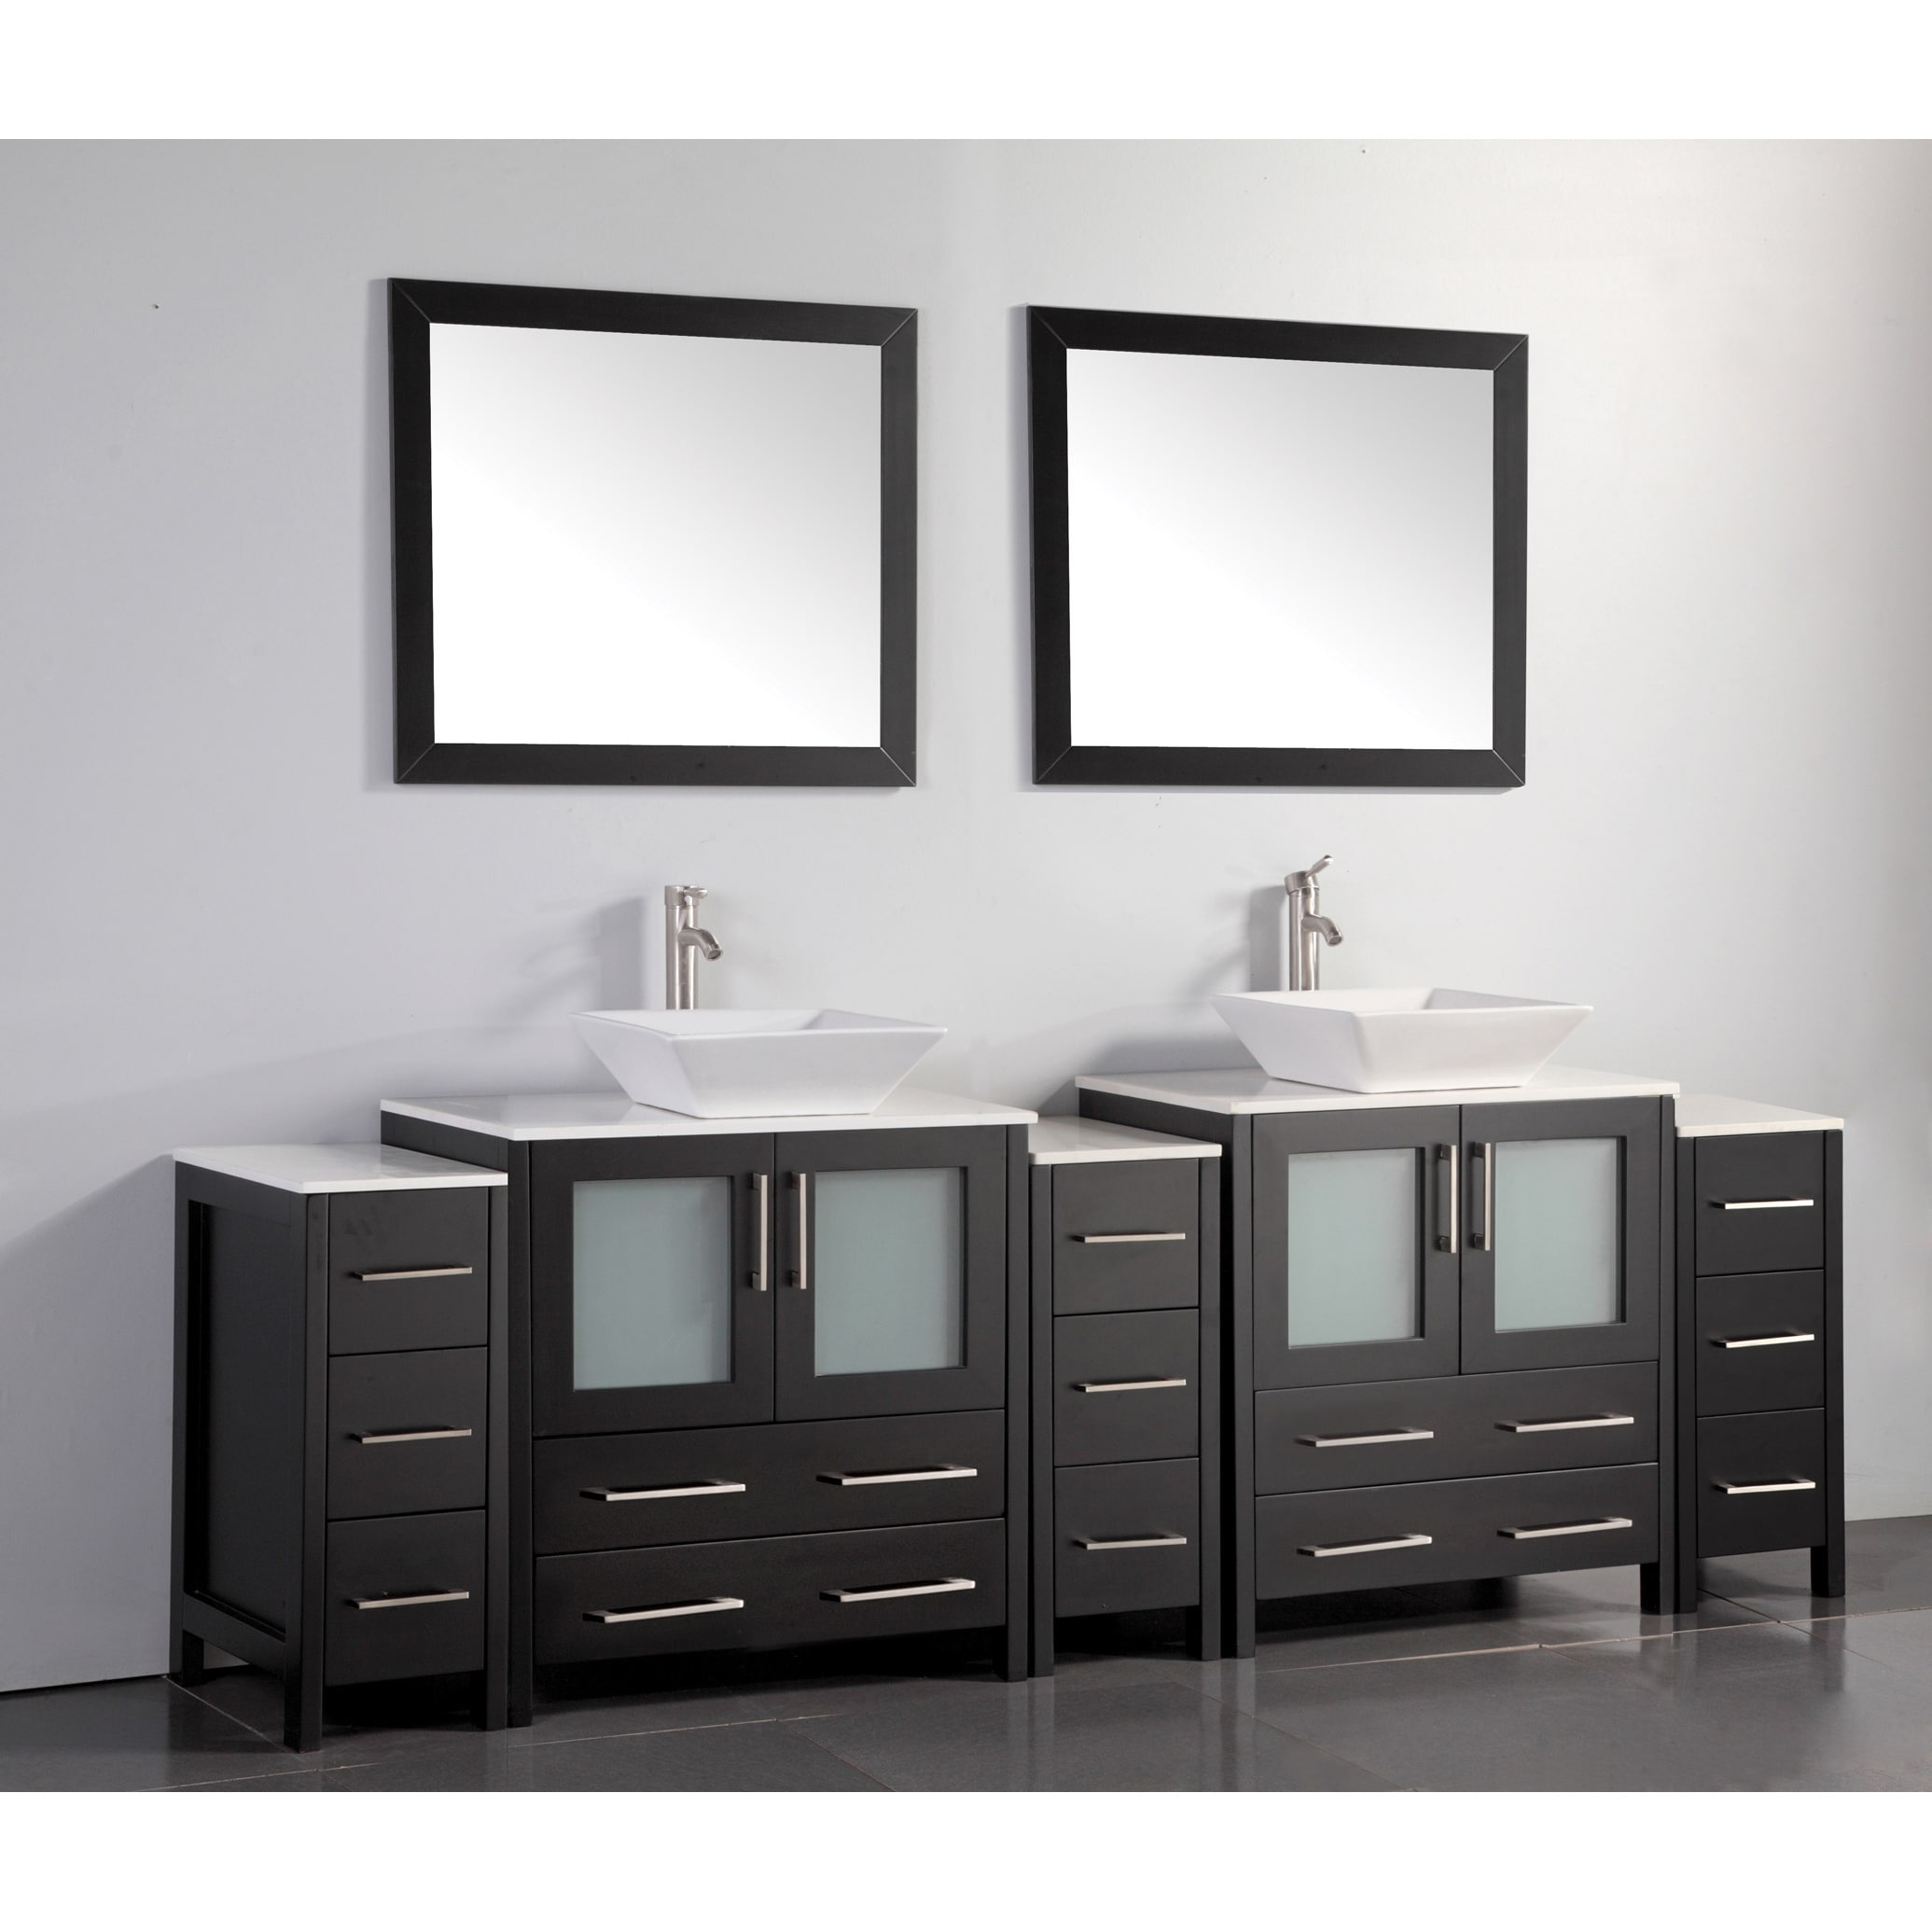 Shop Vanity Art 96 Inch Double Sink Bathroom Vanity Set With Ceramic ...